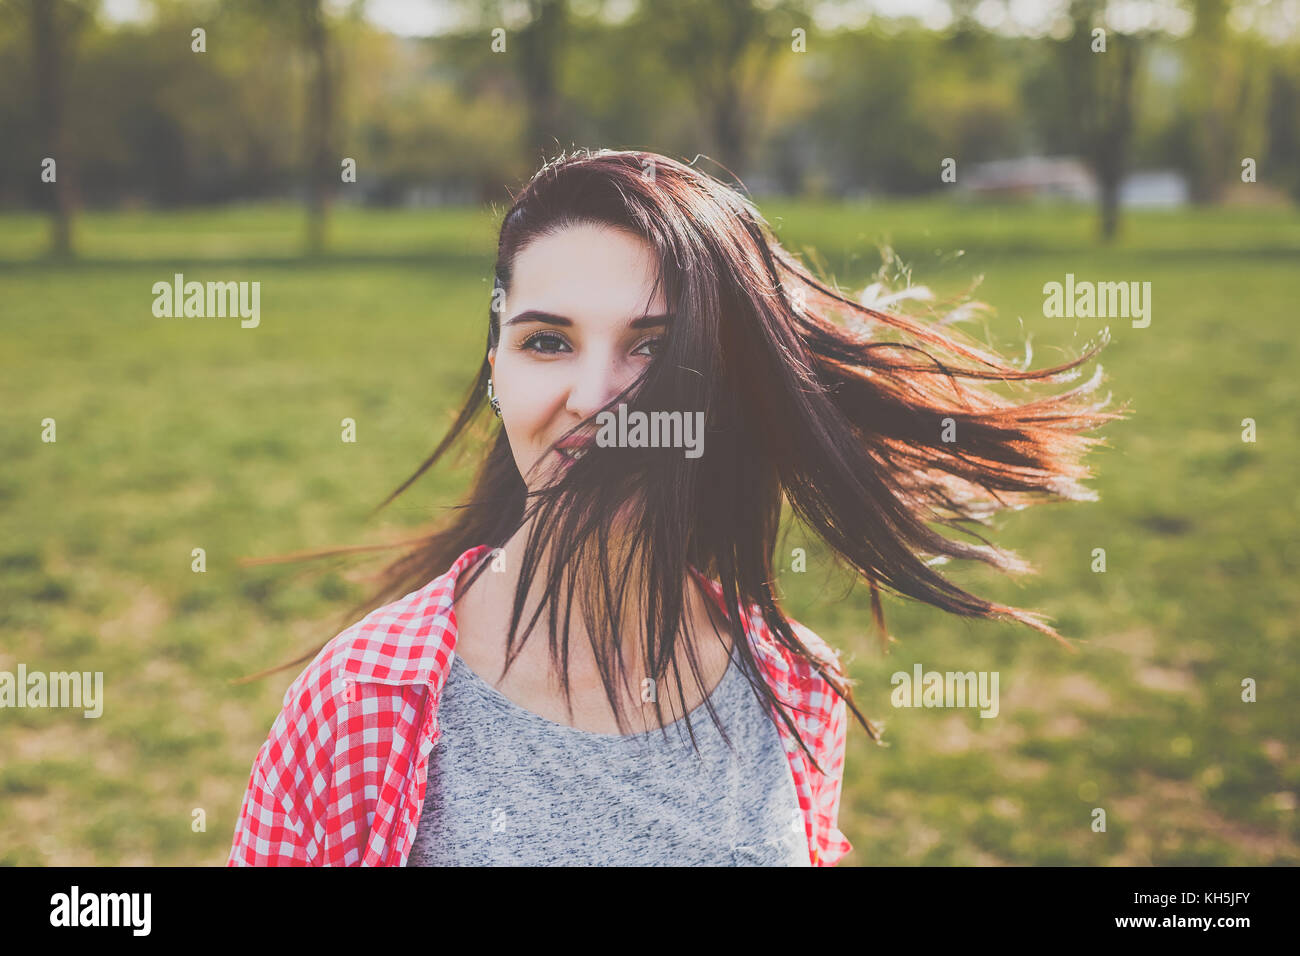 Hipster attractive girl smiling in wind Photo Stock